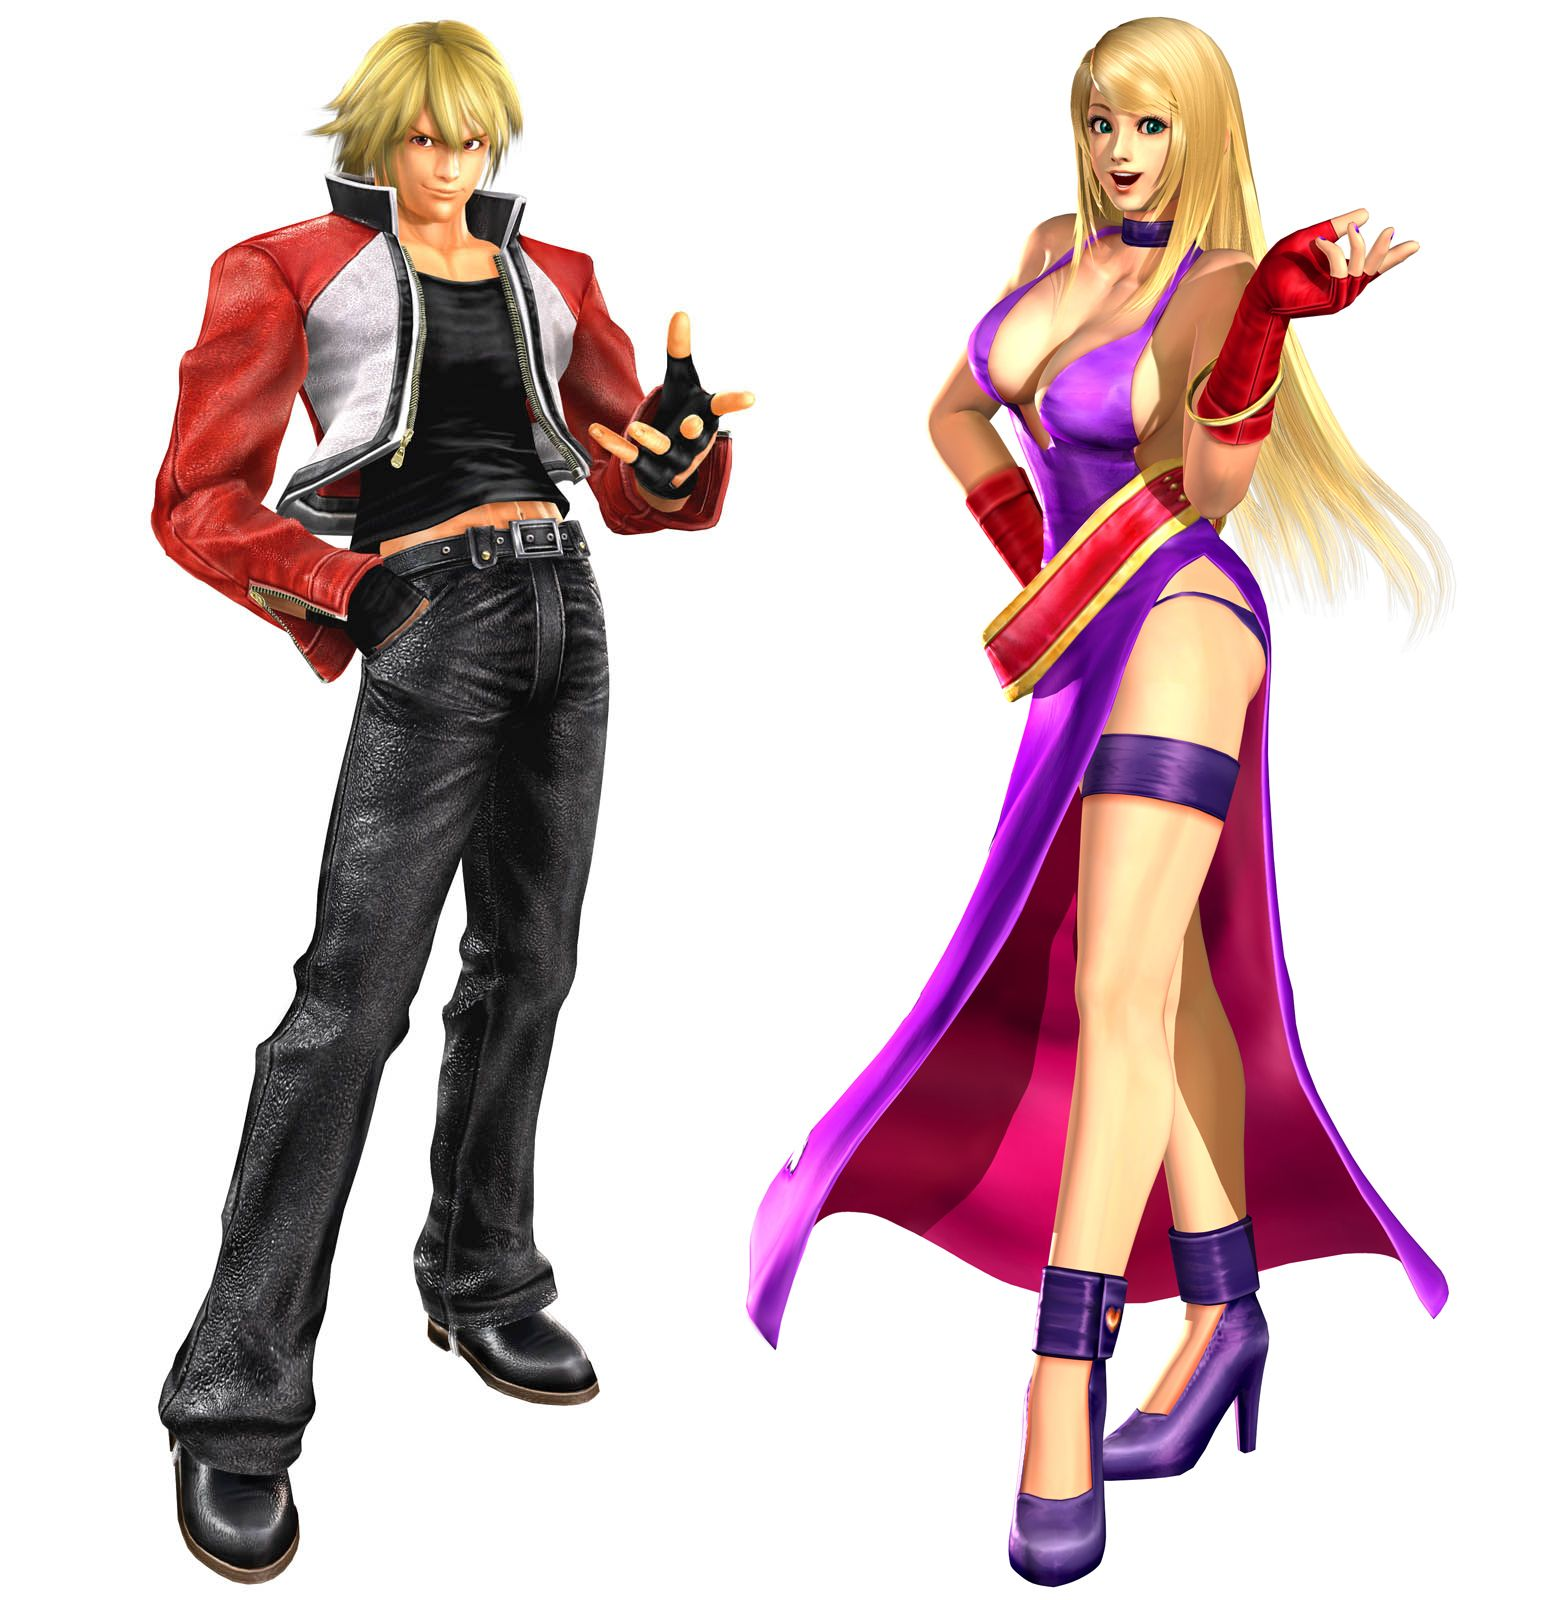 Rock Howard And Bonne Jenet From Garou Mark Of The Wolves Snk King Of Fighters Kof Snk His fighting style its a mix about the reversals of geese howard with terry bogard rush attacks. rock howard and bonne jenet from garou